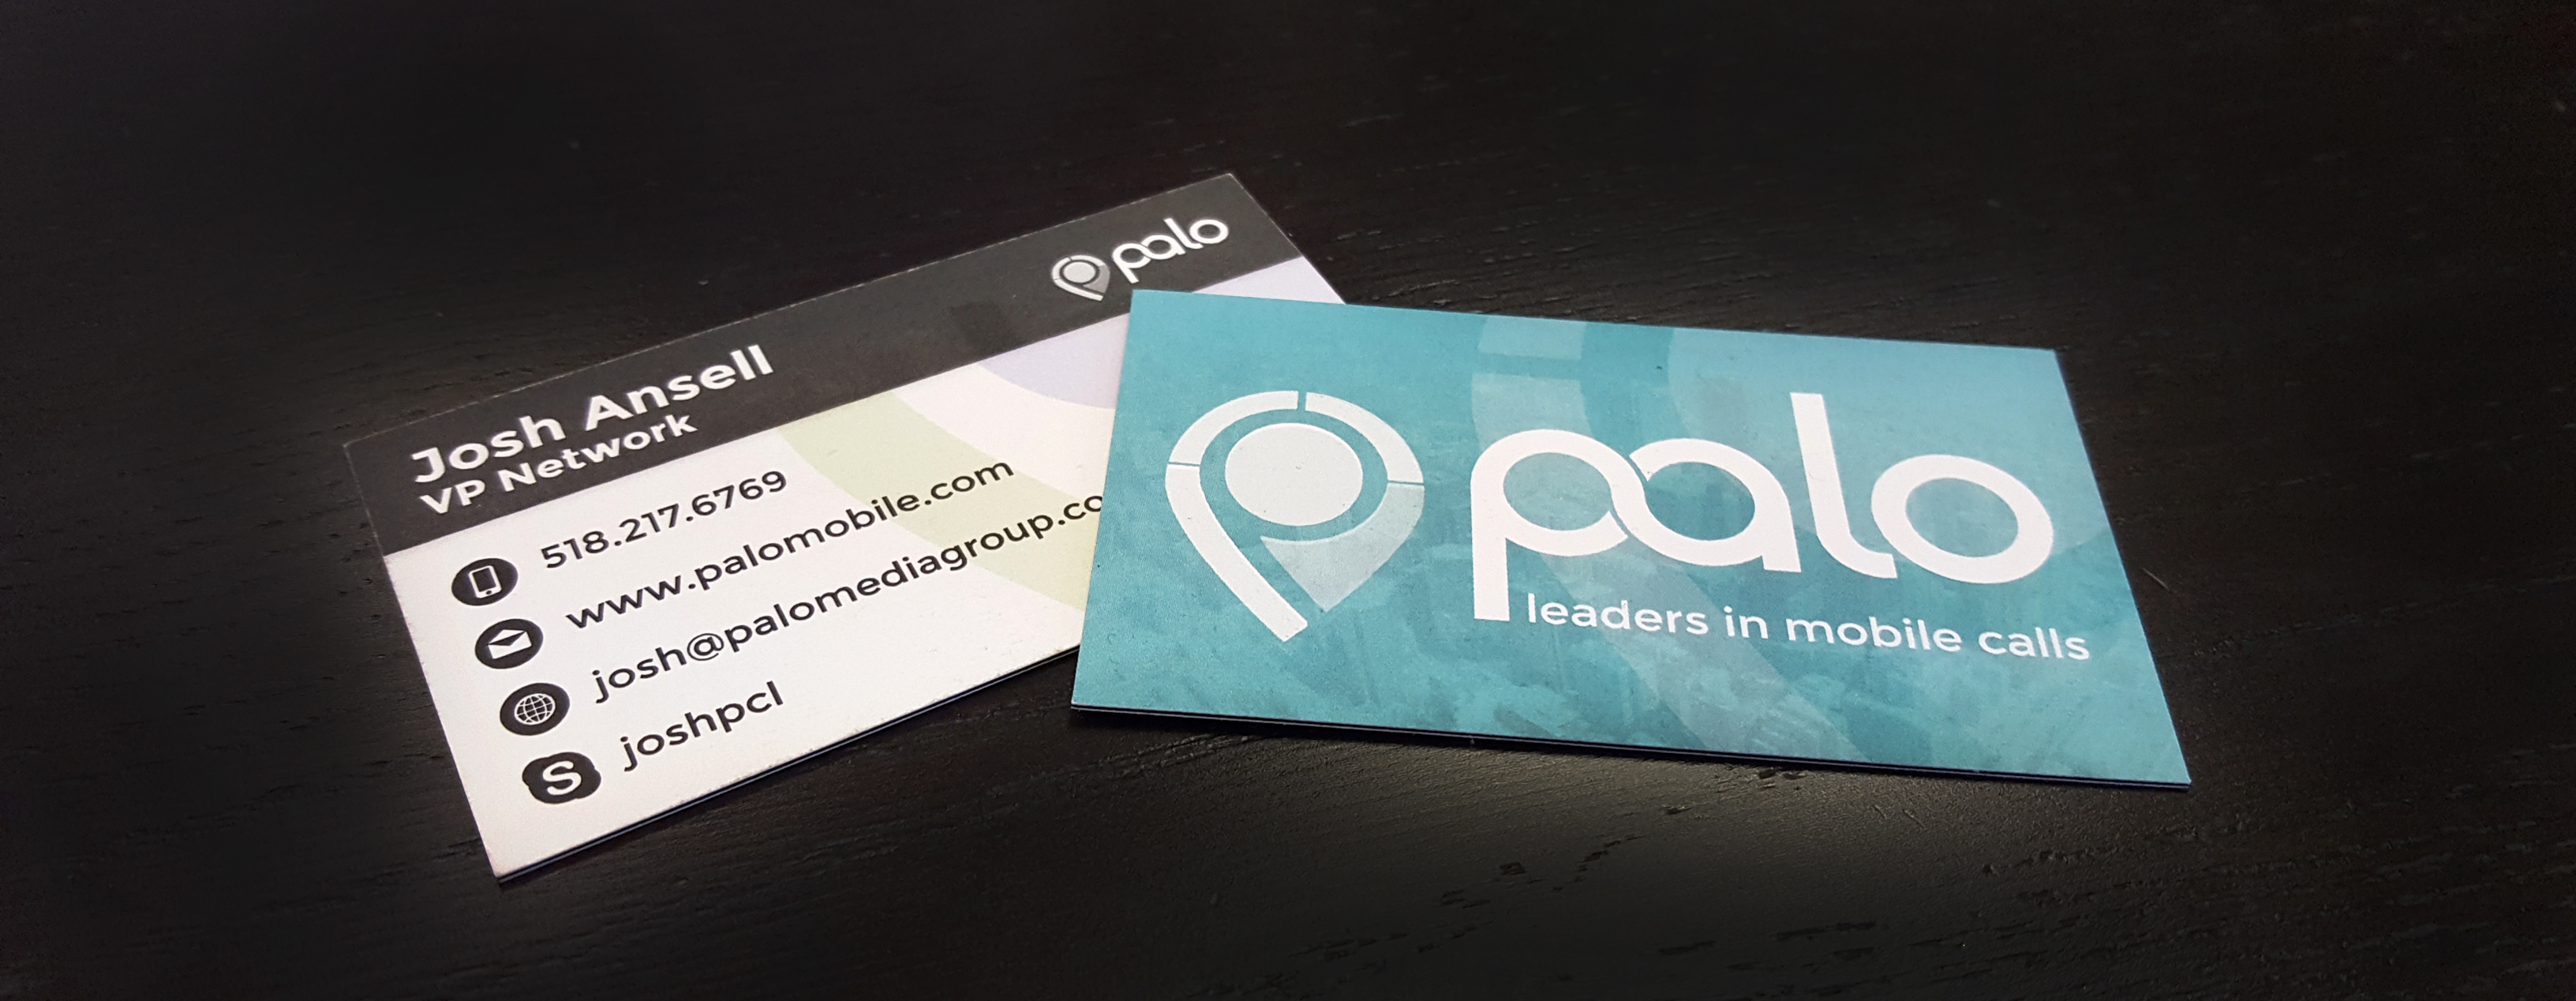 kodie beckley business cards palo mobile